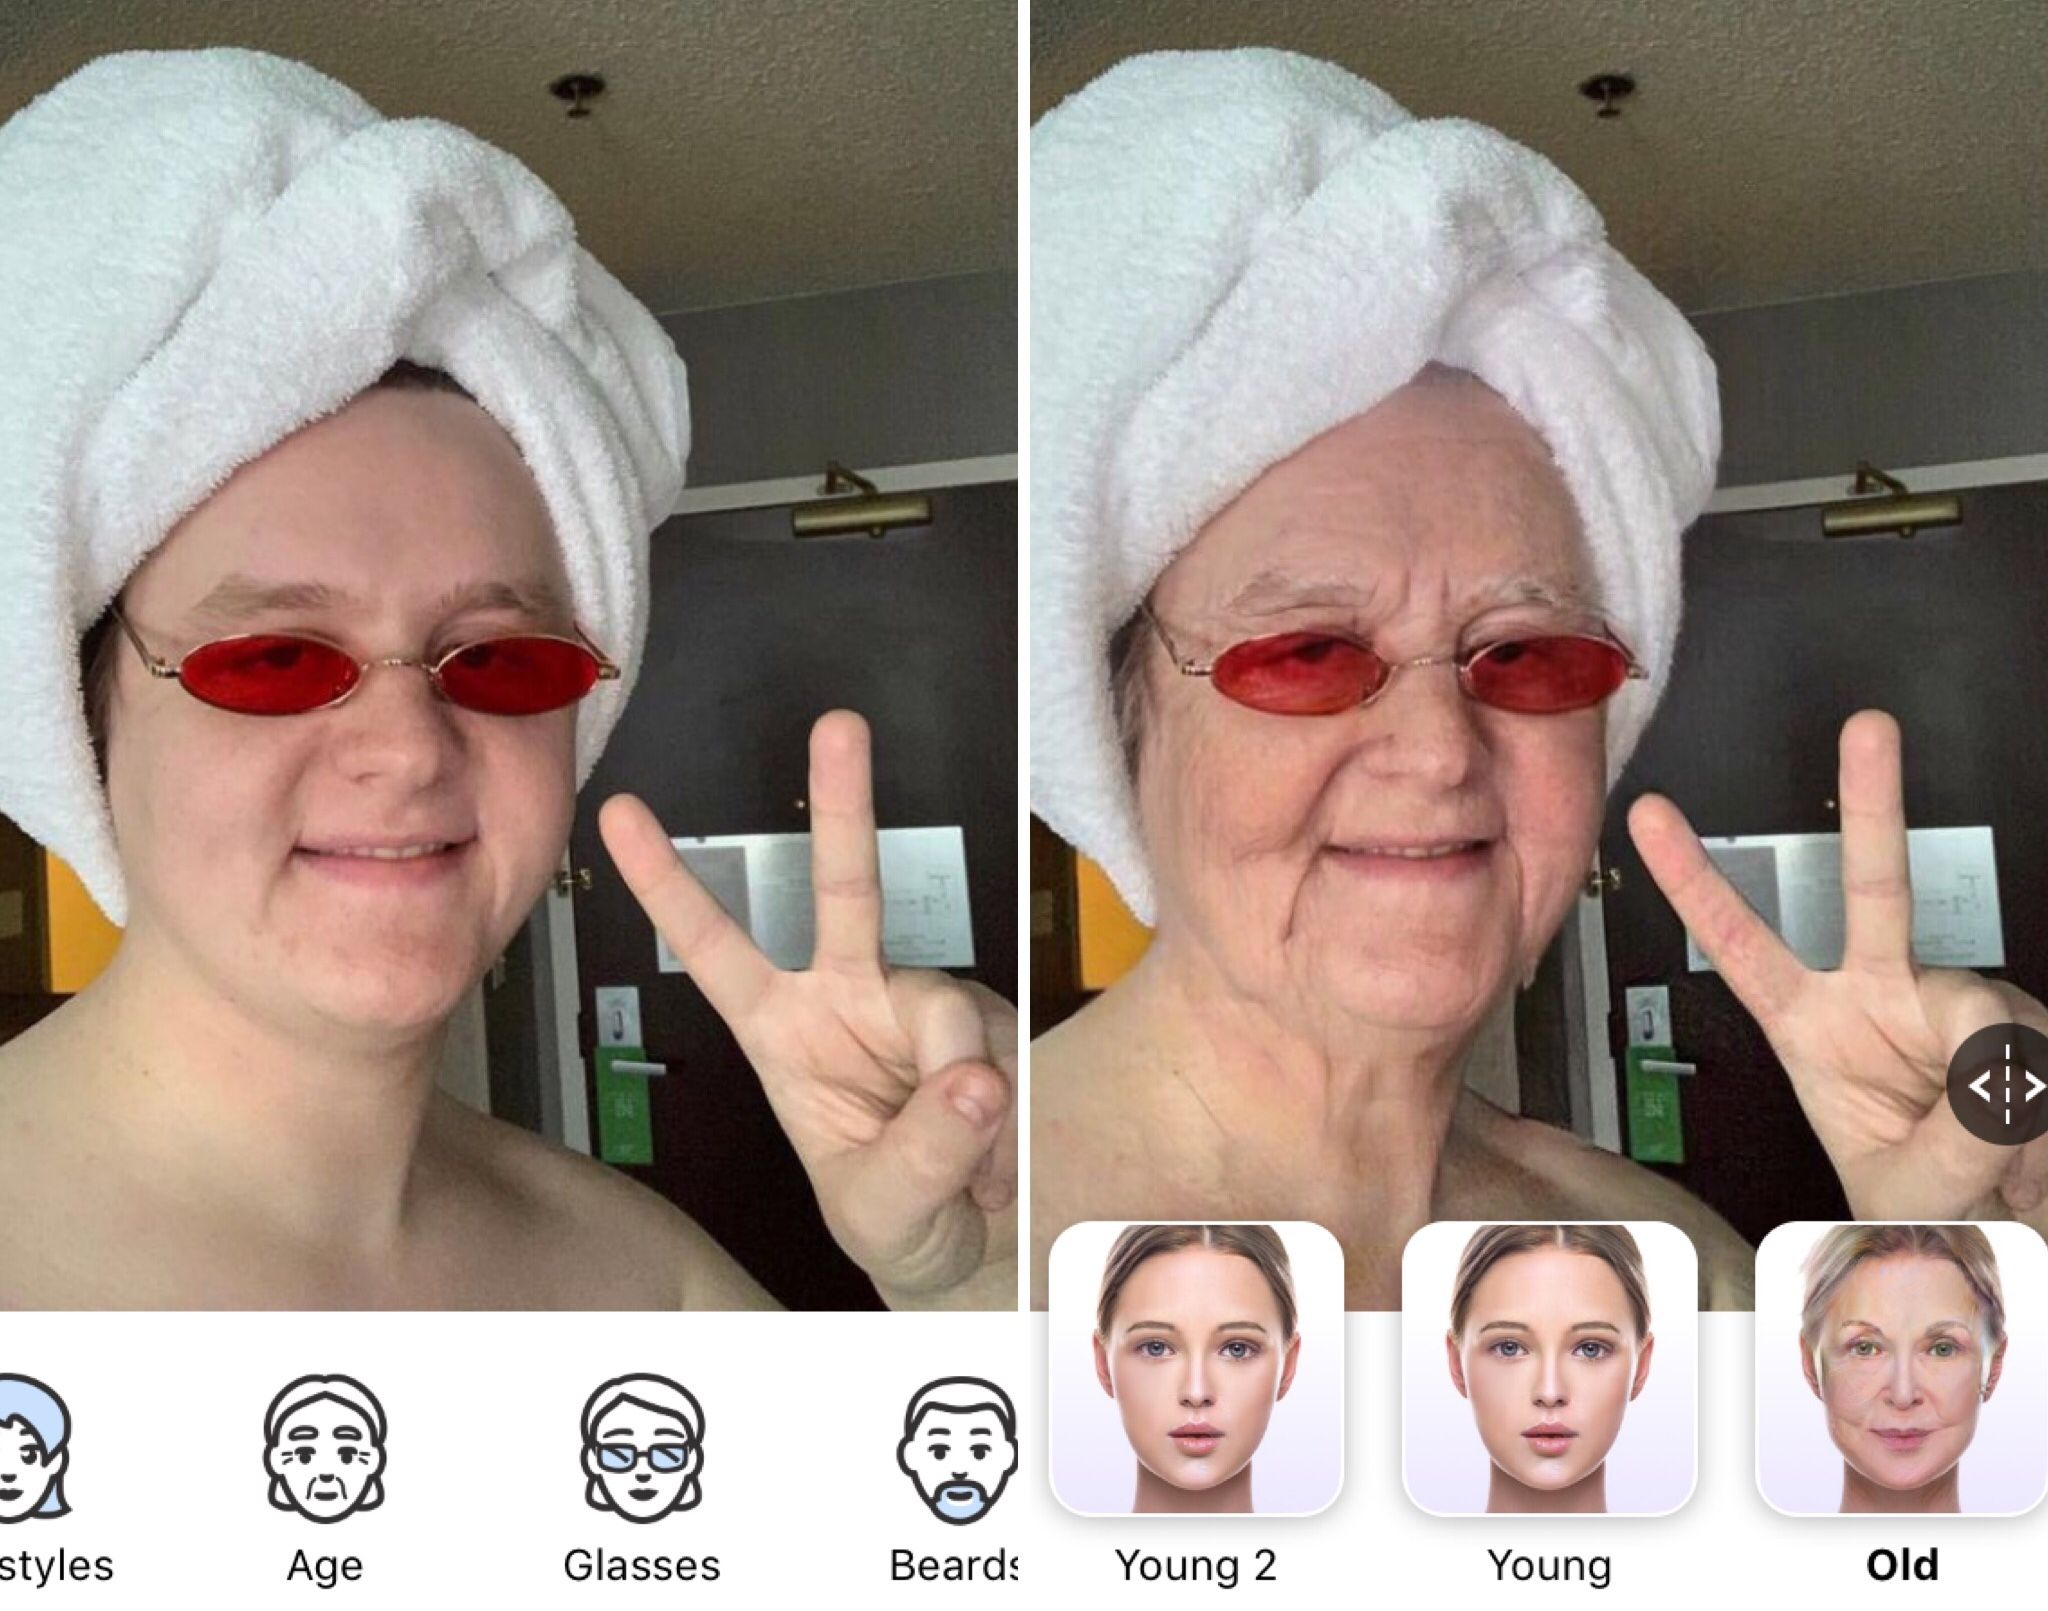 Image may contain: ageing filter, face app, app, older, filter, younger, celebrity, old man, old woman, social media, Instagram, Snapchat, Facebook, Twitter, age changing app, make yourself look older, free, ageing, challenge, Lewis Capaldi, funniest, best examples, Headband, Finger, Hat, Head, Face, Clothing, Apparel, Sunglasses, Accessory, Accessories, Human, Person